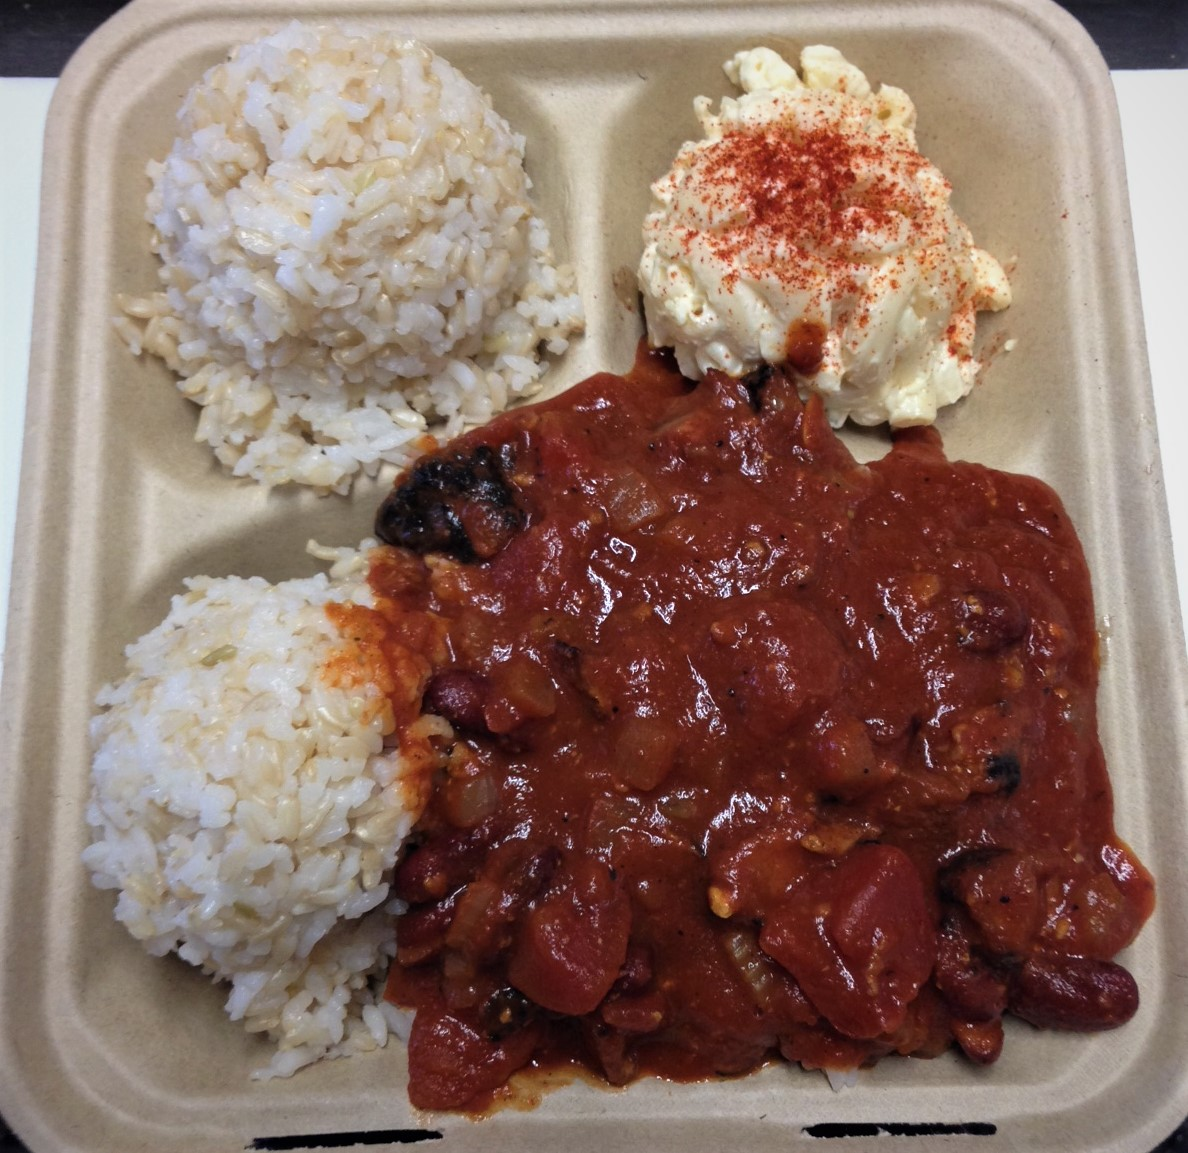 Guava Smoked Chili Plate Lunch